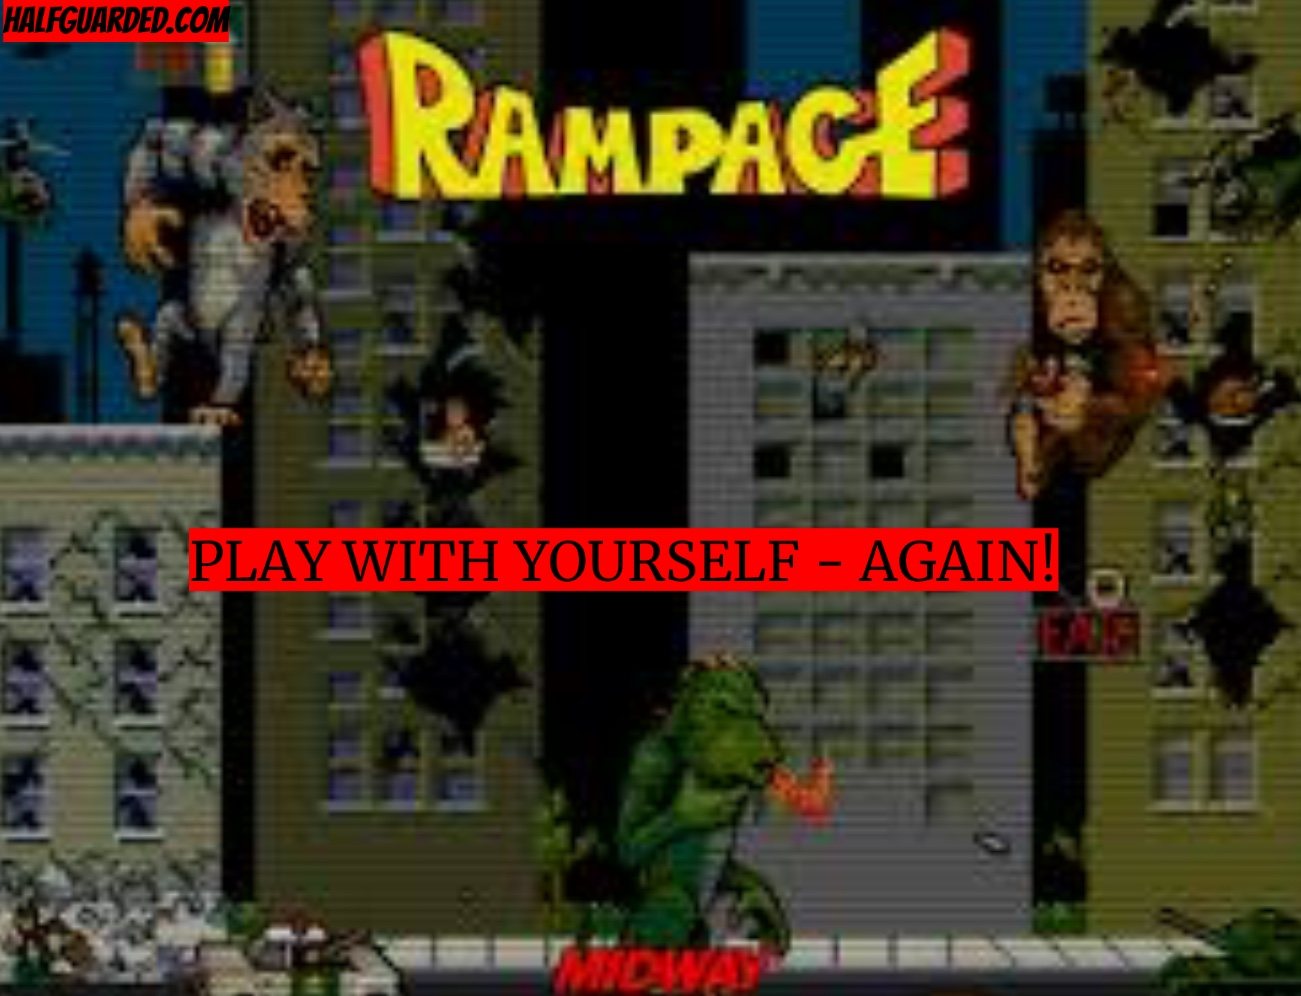 rampage movie 2009 sequel